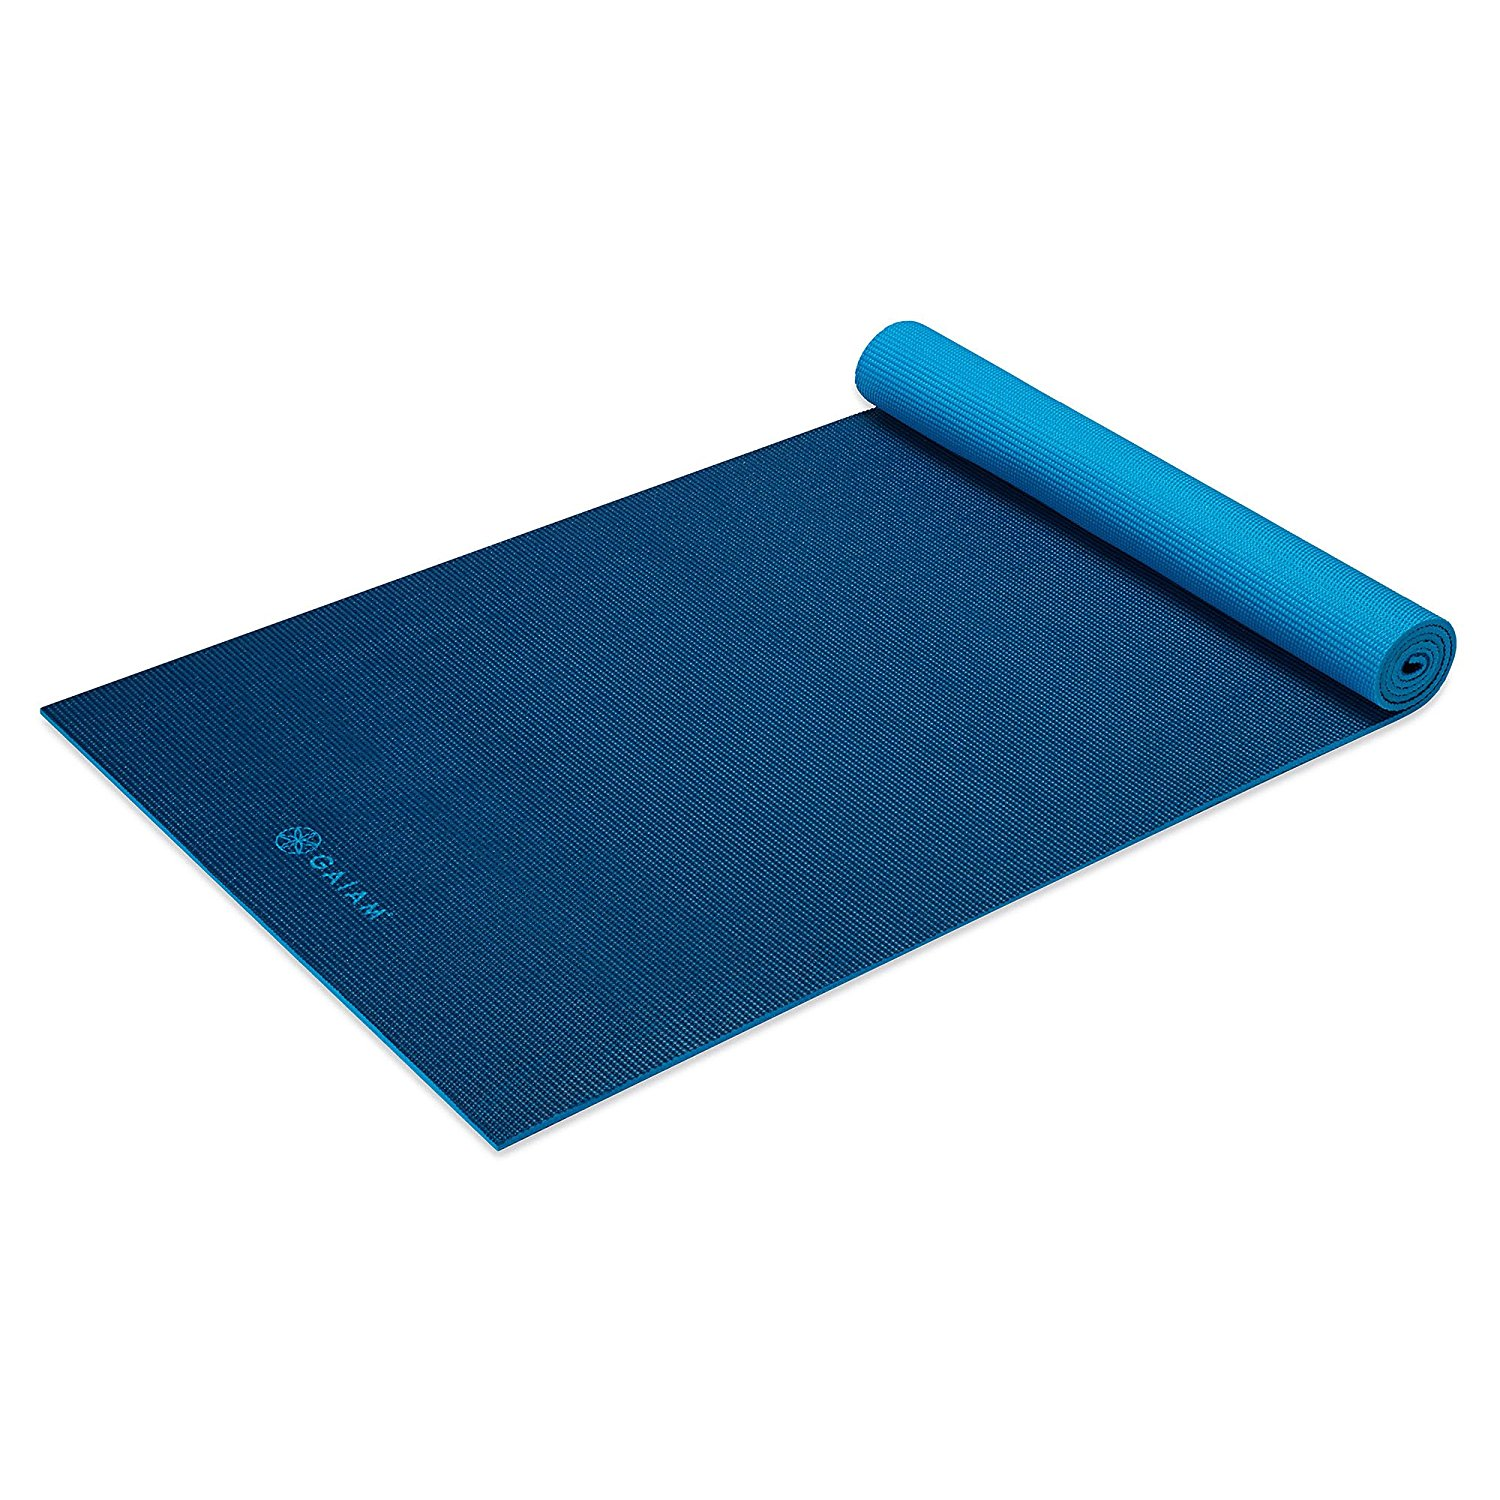 gaiam solid non-slip yoga mat, navy/blue,5mm